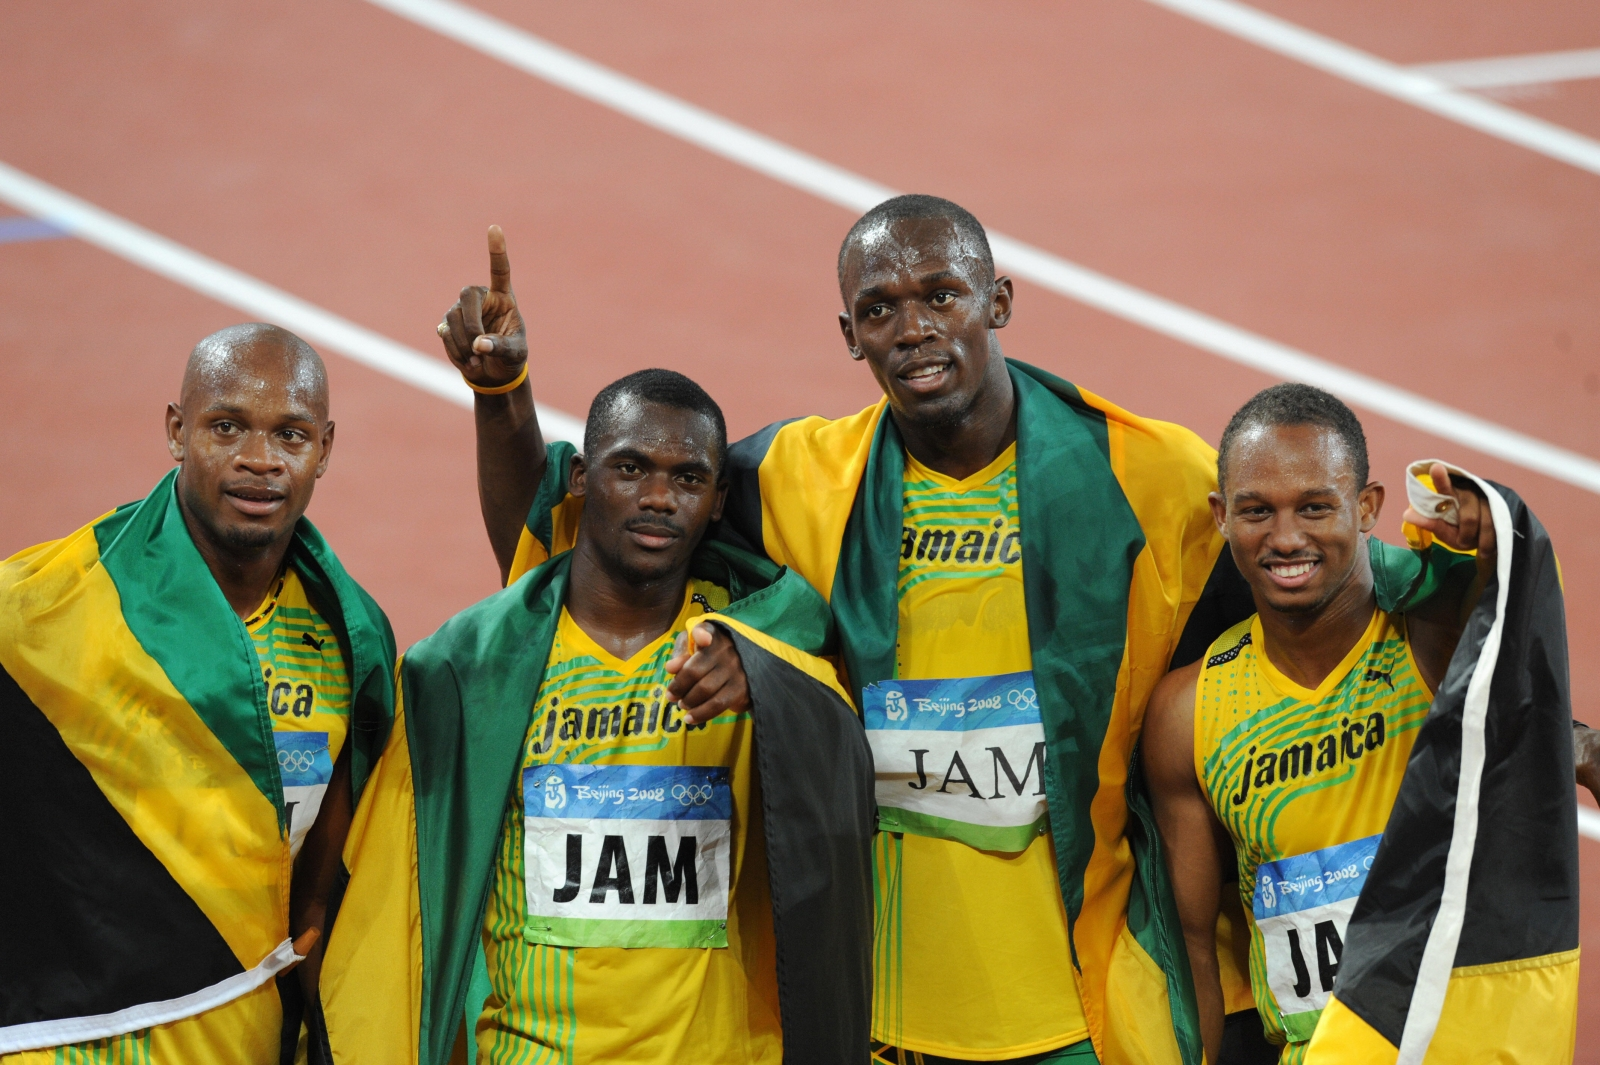 The Jamaican team in 2008